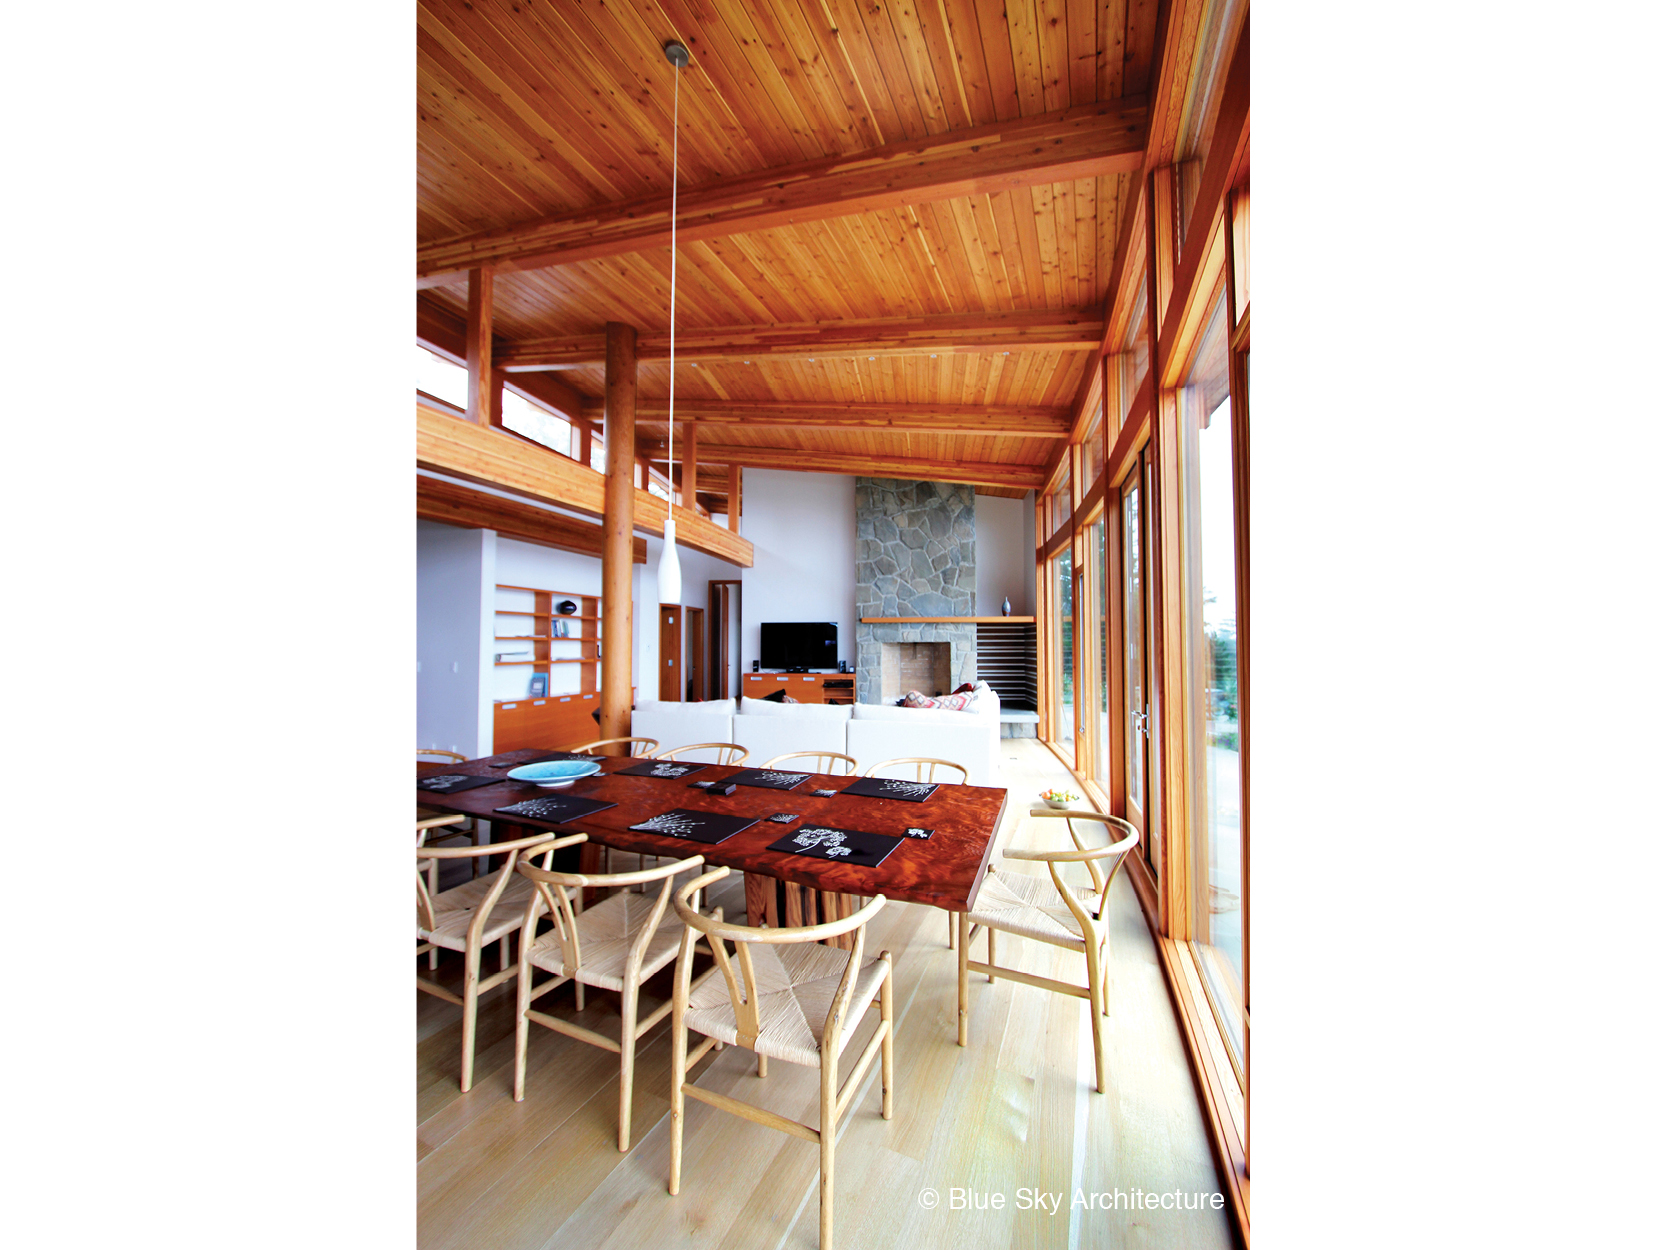 Open floor plan dining room and living room with post and beam construction